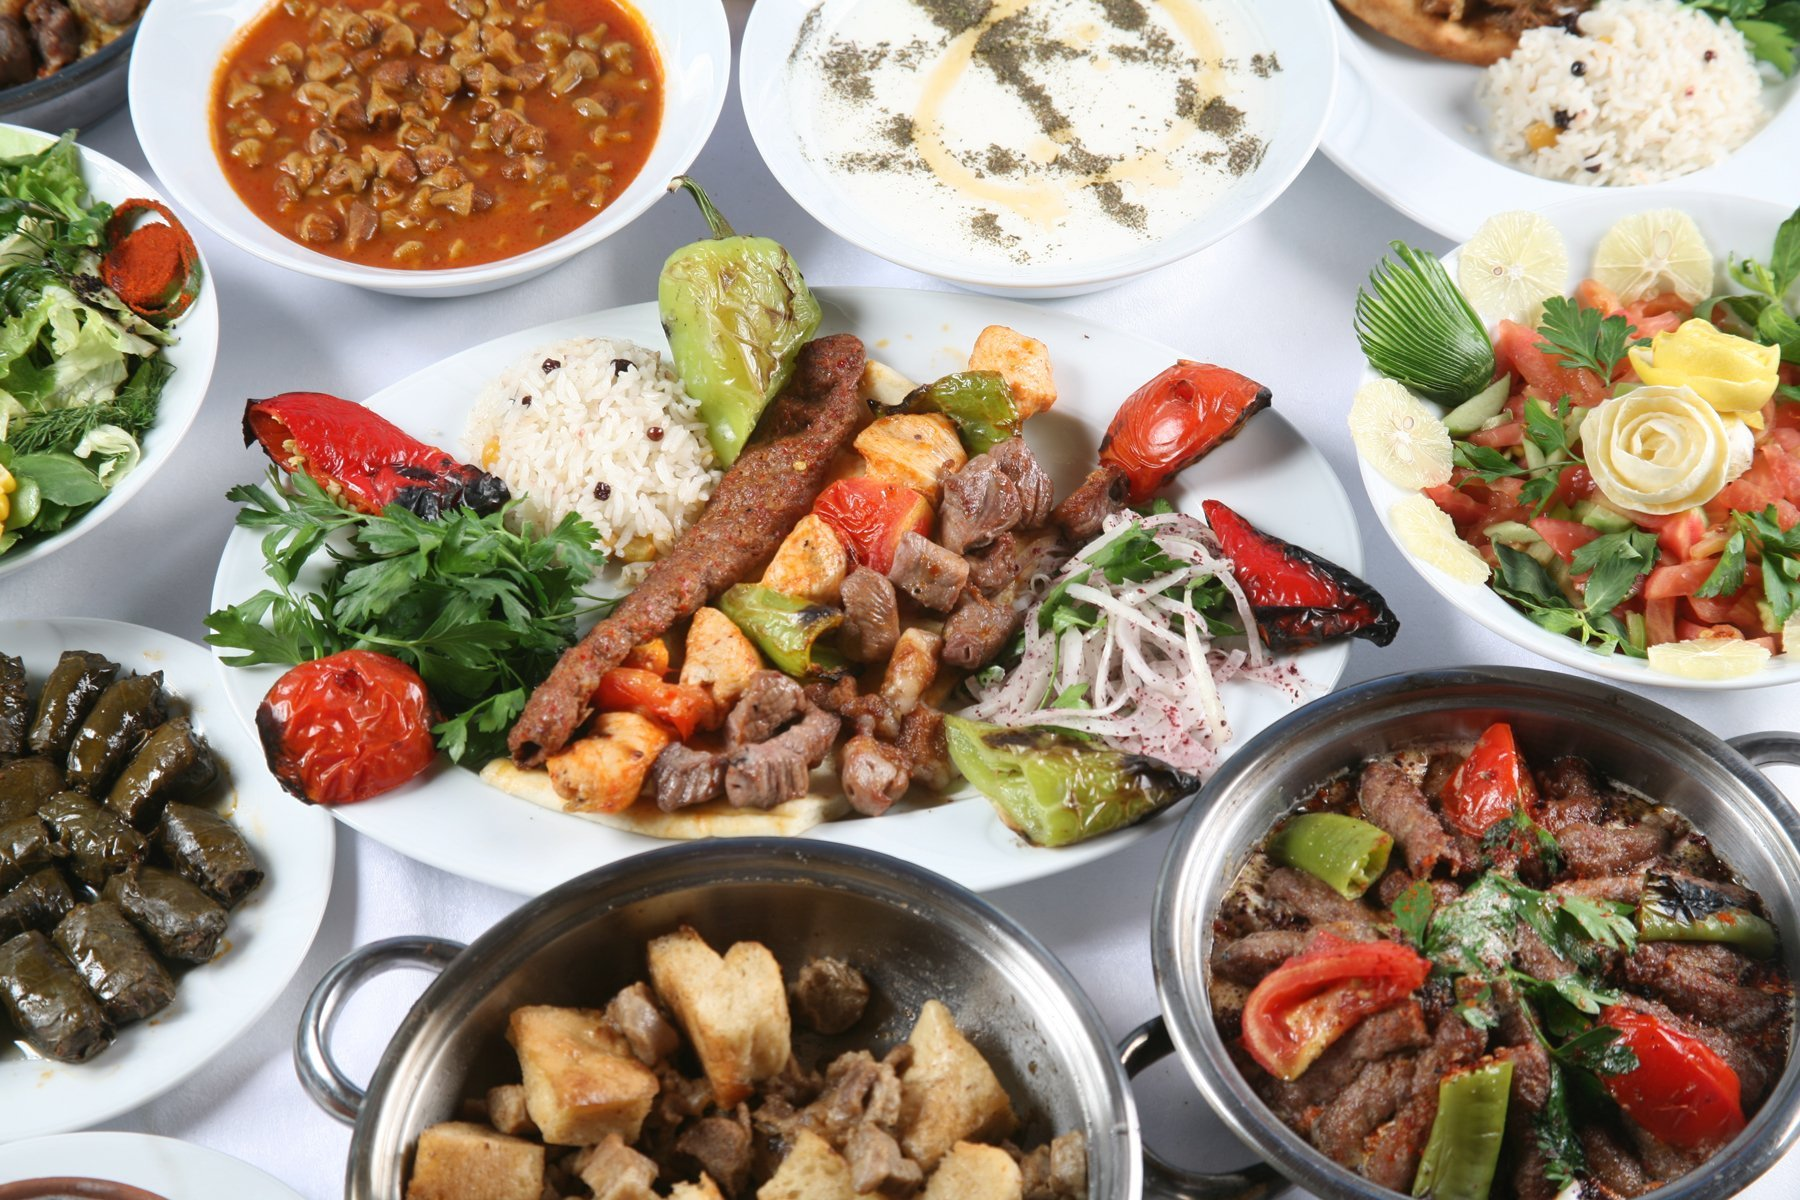 Variety of Turkish Cuisine